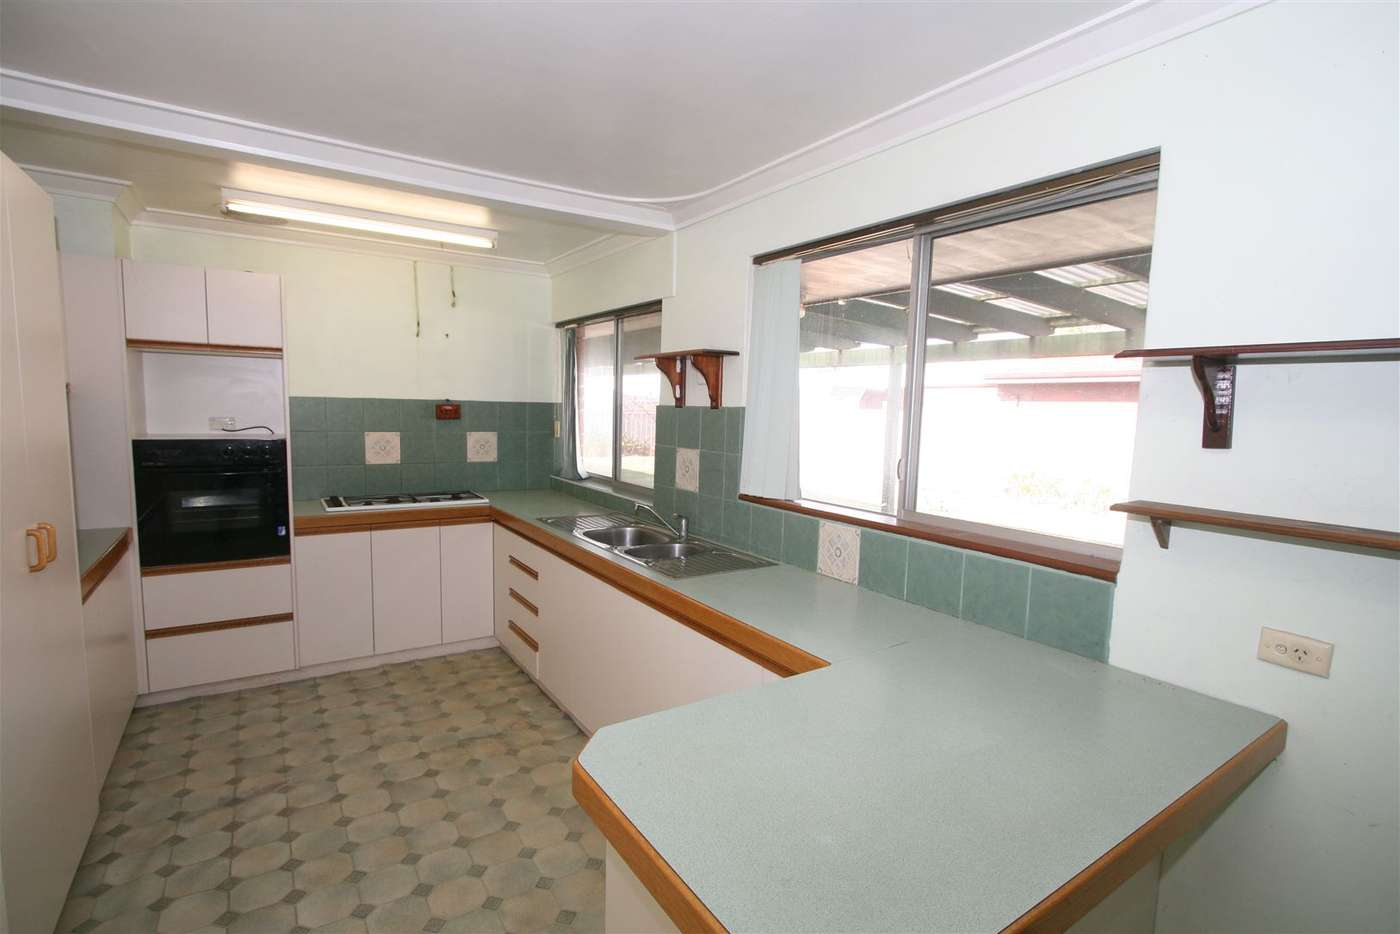 Sixth view of Homely house listing, 11 Coral Road, Safety Bay WA 6169